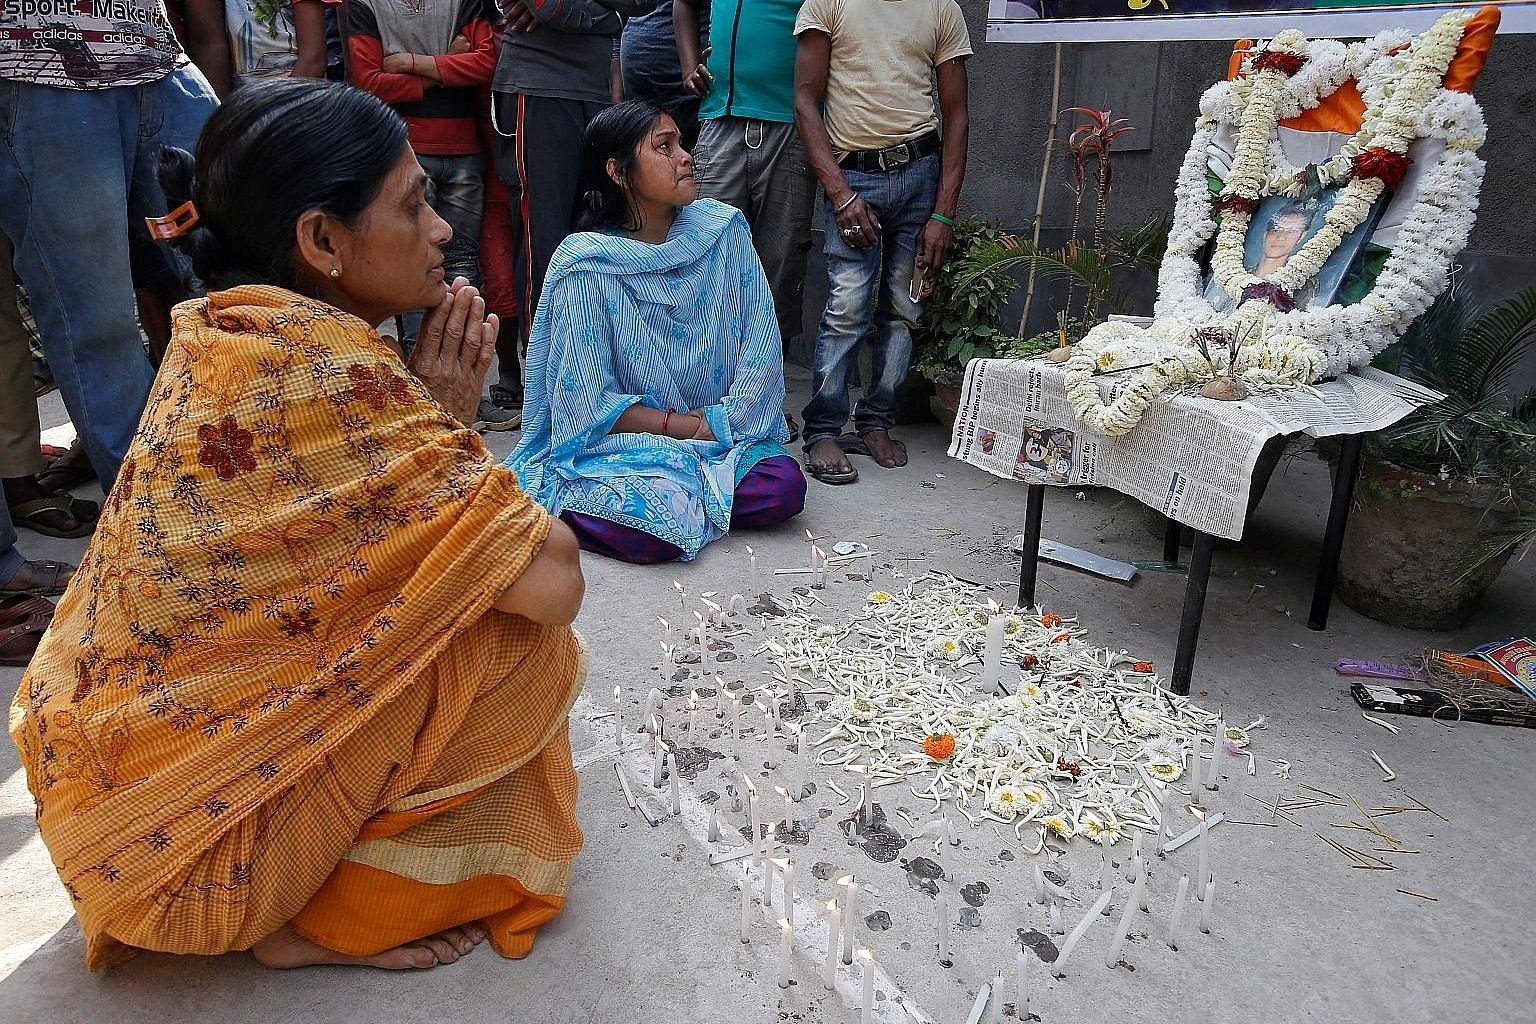 Women praying in front of a portrait of Central Reserve Police Force officer Bablu Santra, who was killed in the Kashmir terror attack.